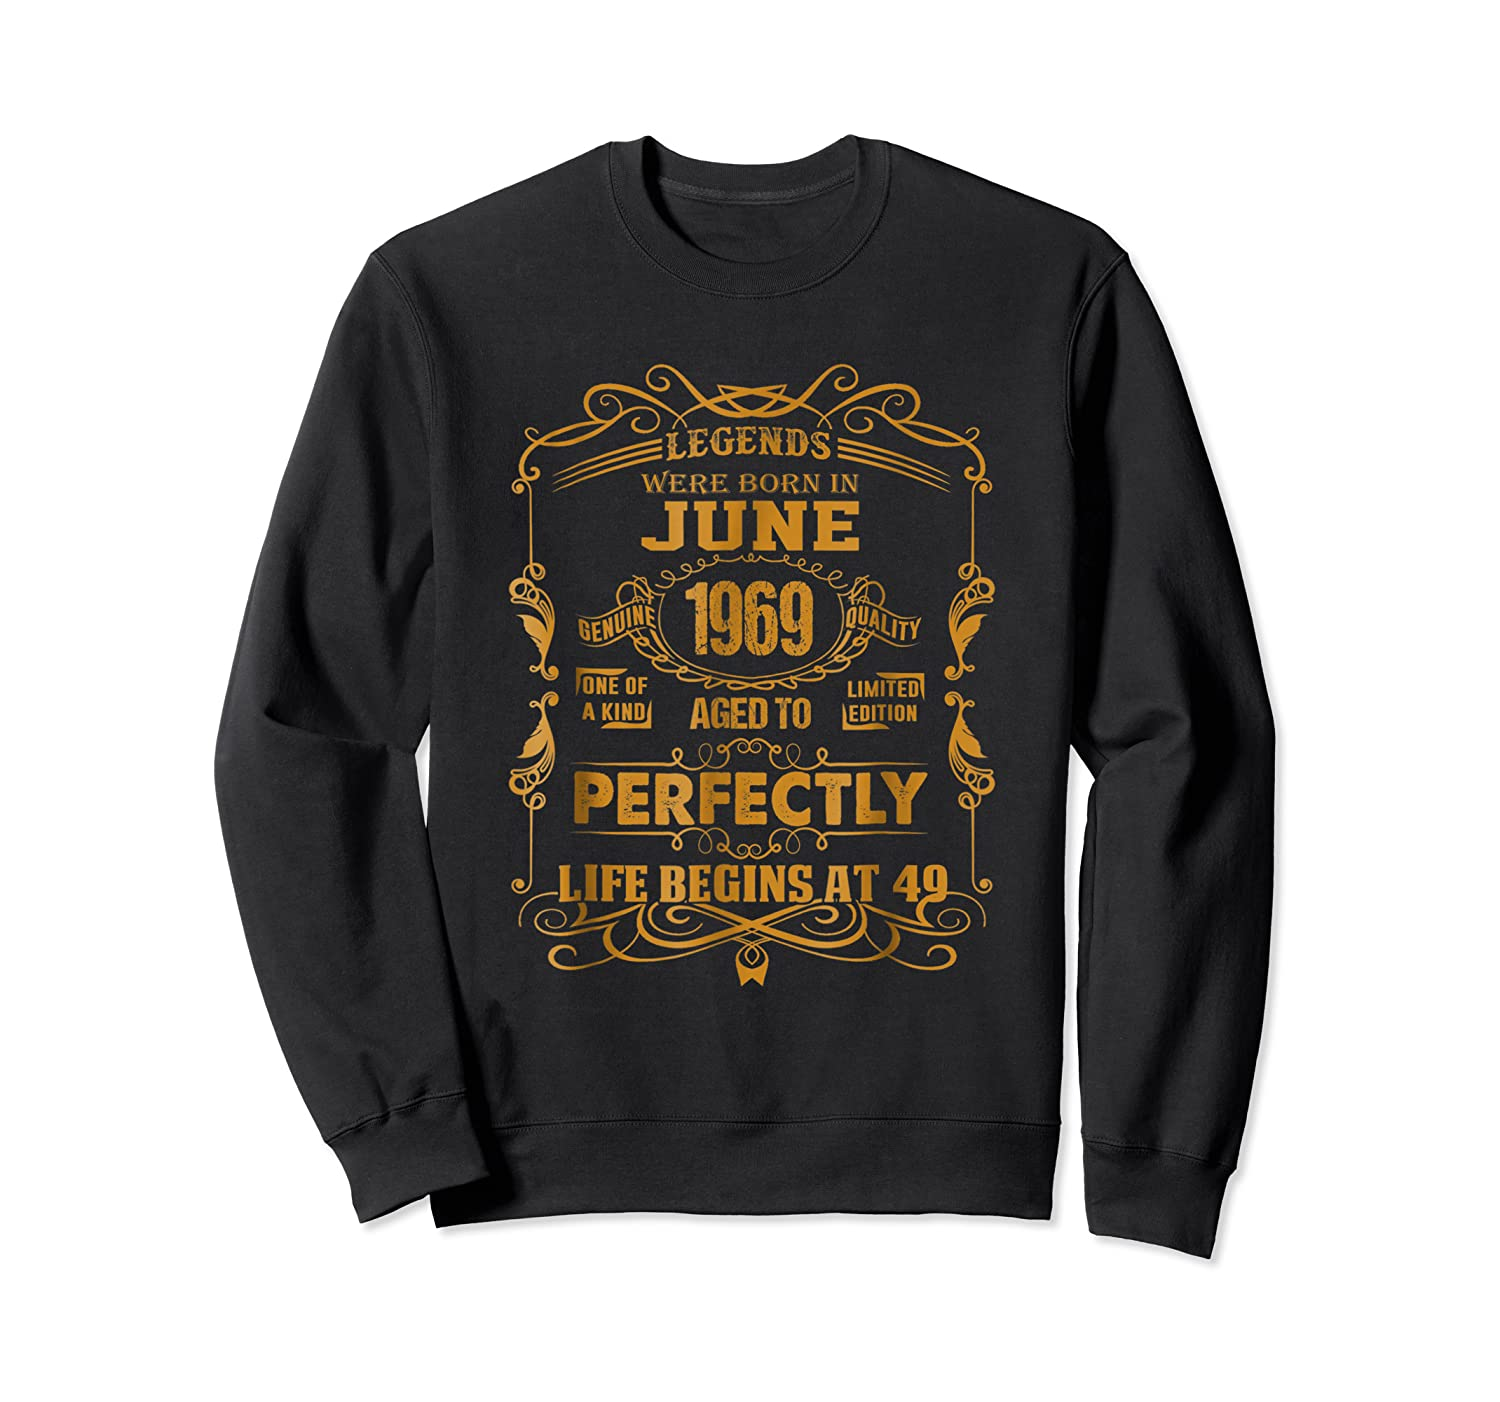 Legends Born In June 1969 - 49th Birthday Gift For Shirts Crewneck Sweater